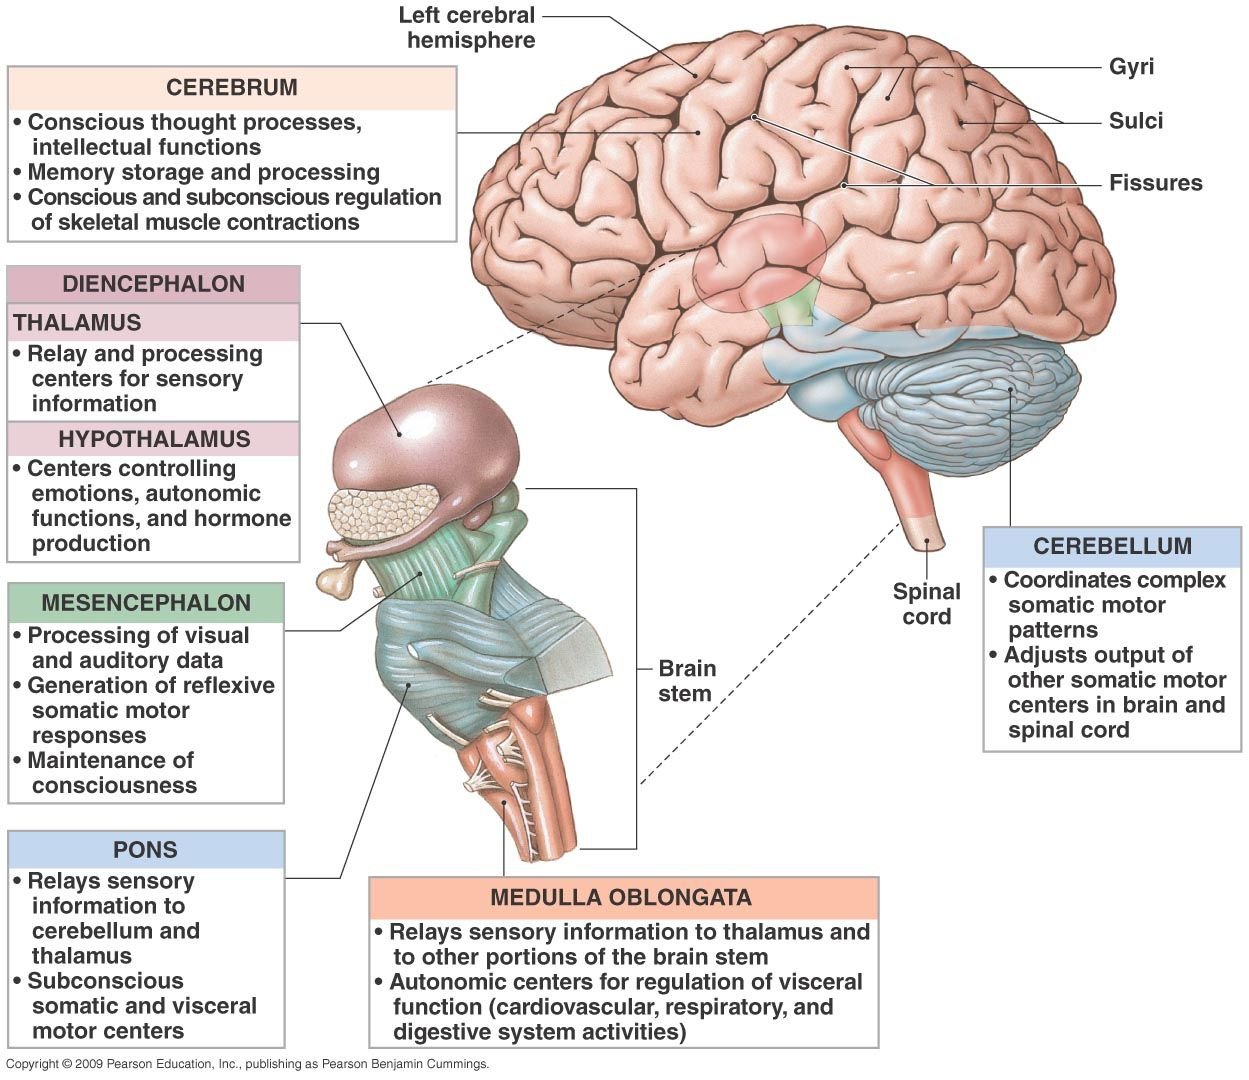 Pin by Sally Conder on Neuroscience (With images ...